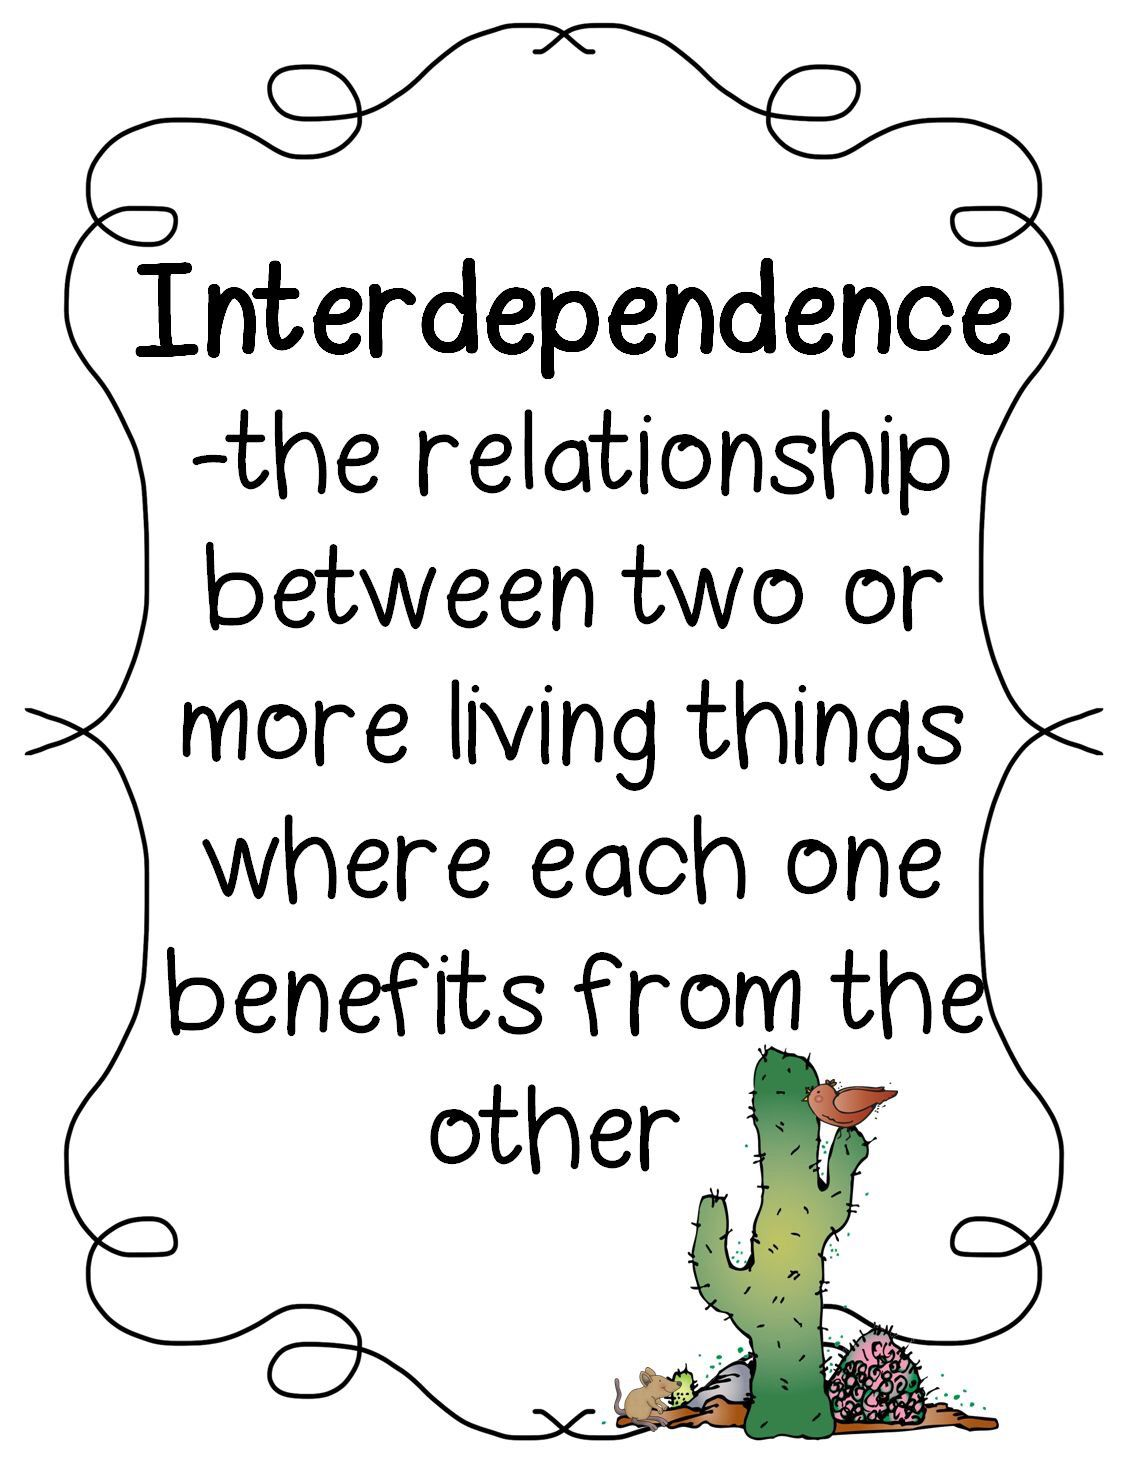 Interdependence The Relationship Between Two Or More